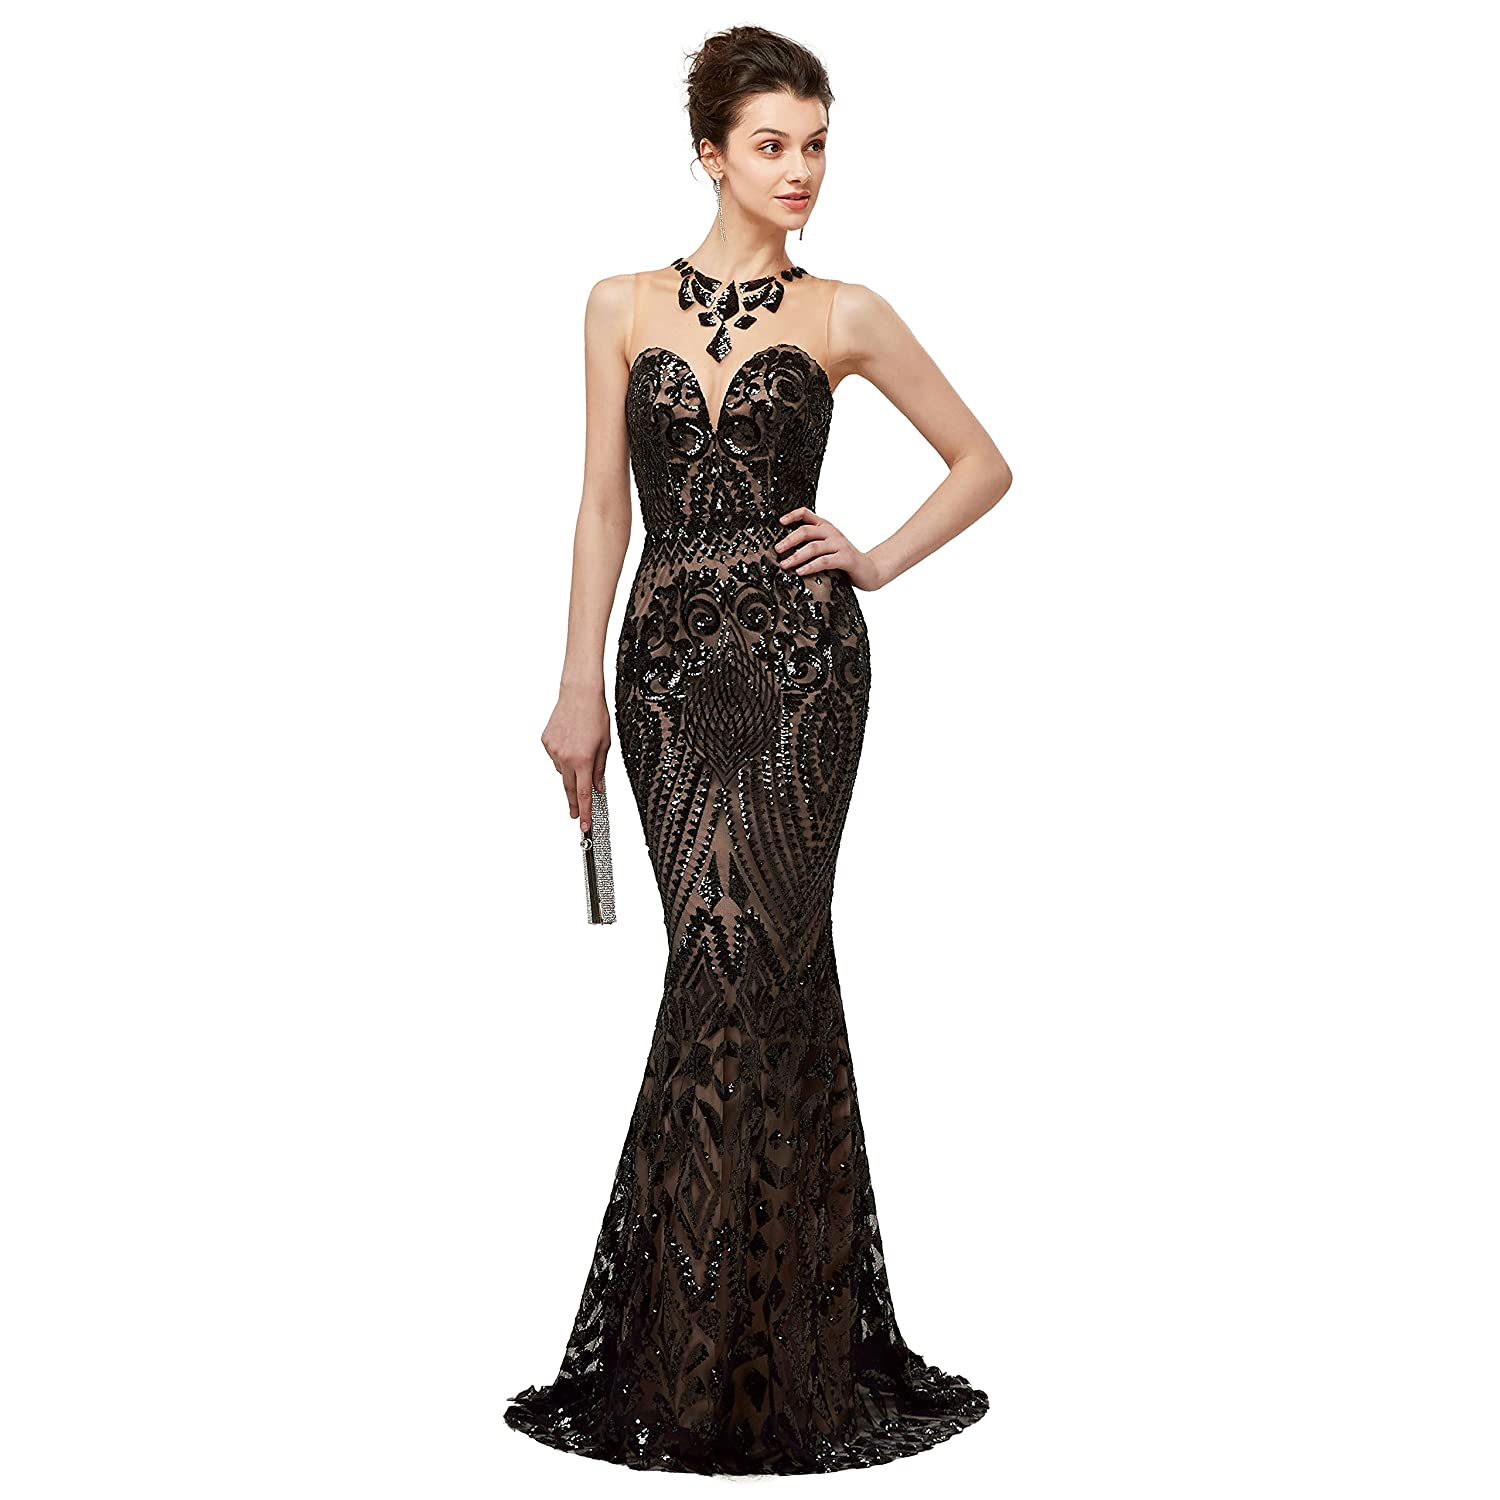 22fcdbe327 ... Women s Mermaid High Neck Applique Sequin Beading Prom Dress 2018 Long  Evening Gown. Wholesale Price 135.99 -  139.99. Imported FABRIC  Lace and  Tulle